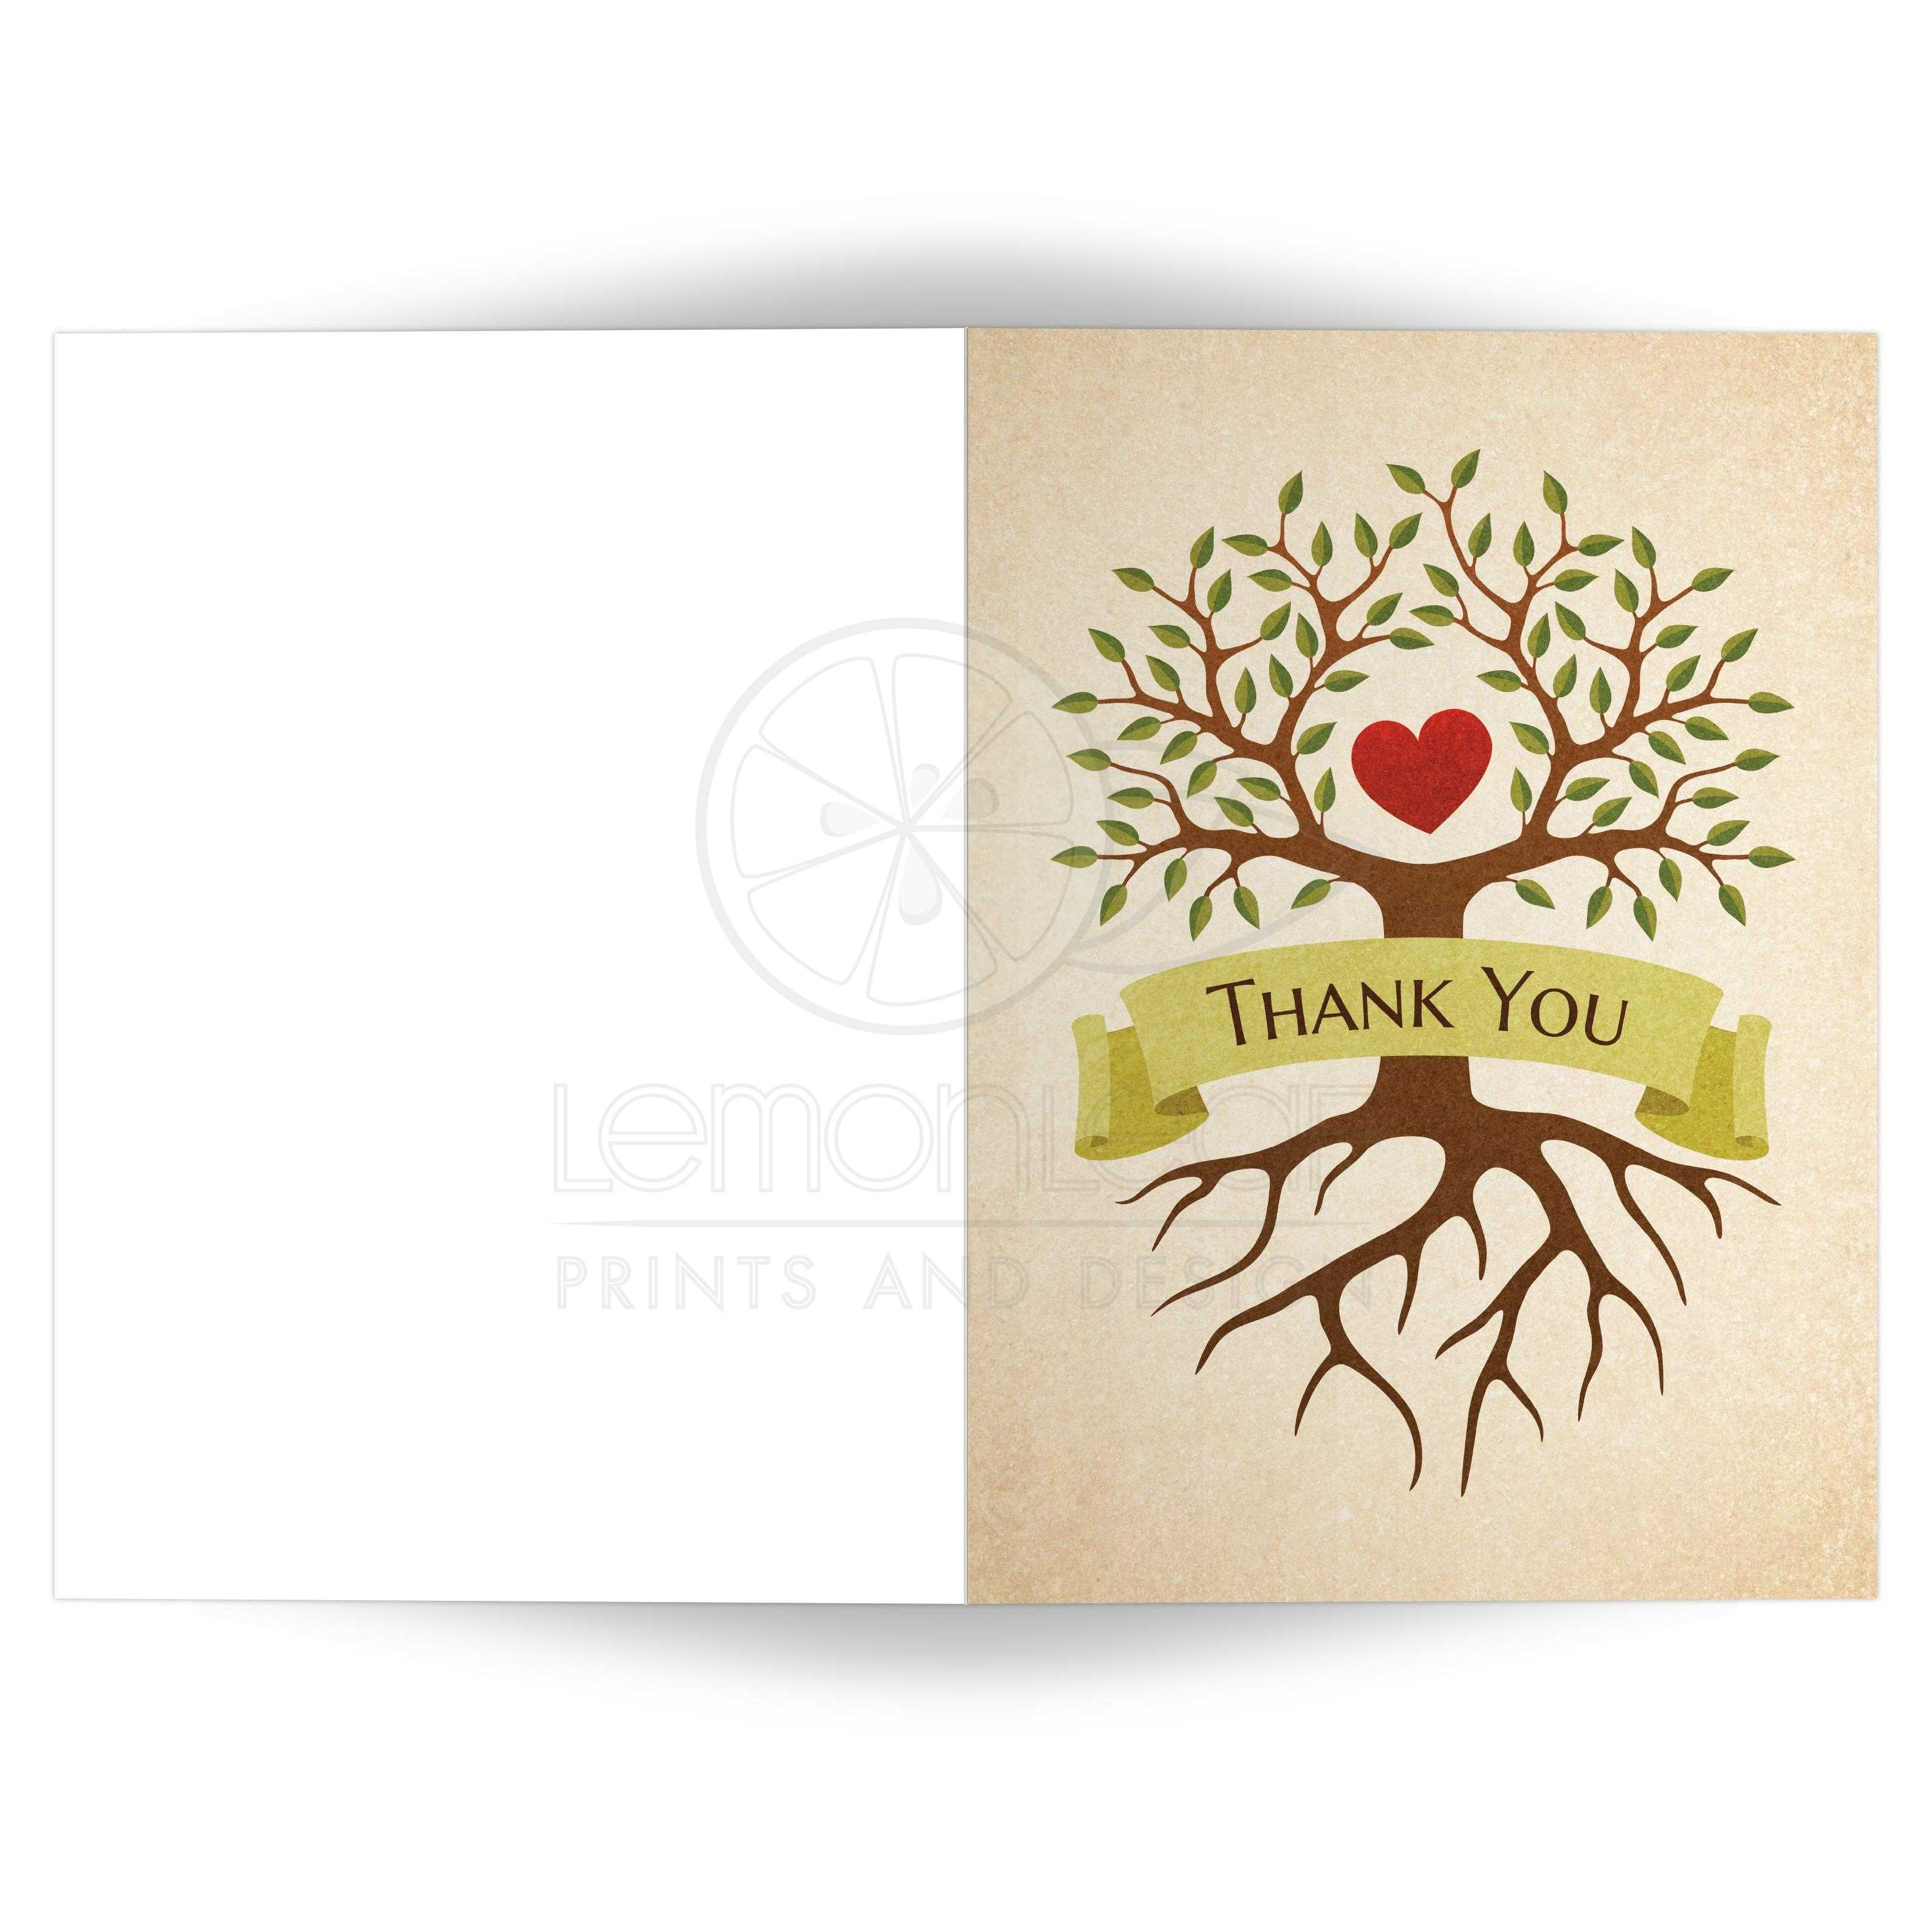 Folded Thank You Card With Beautiful Heart Tree